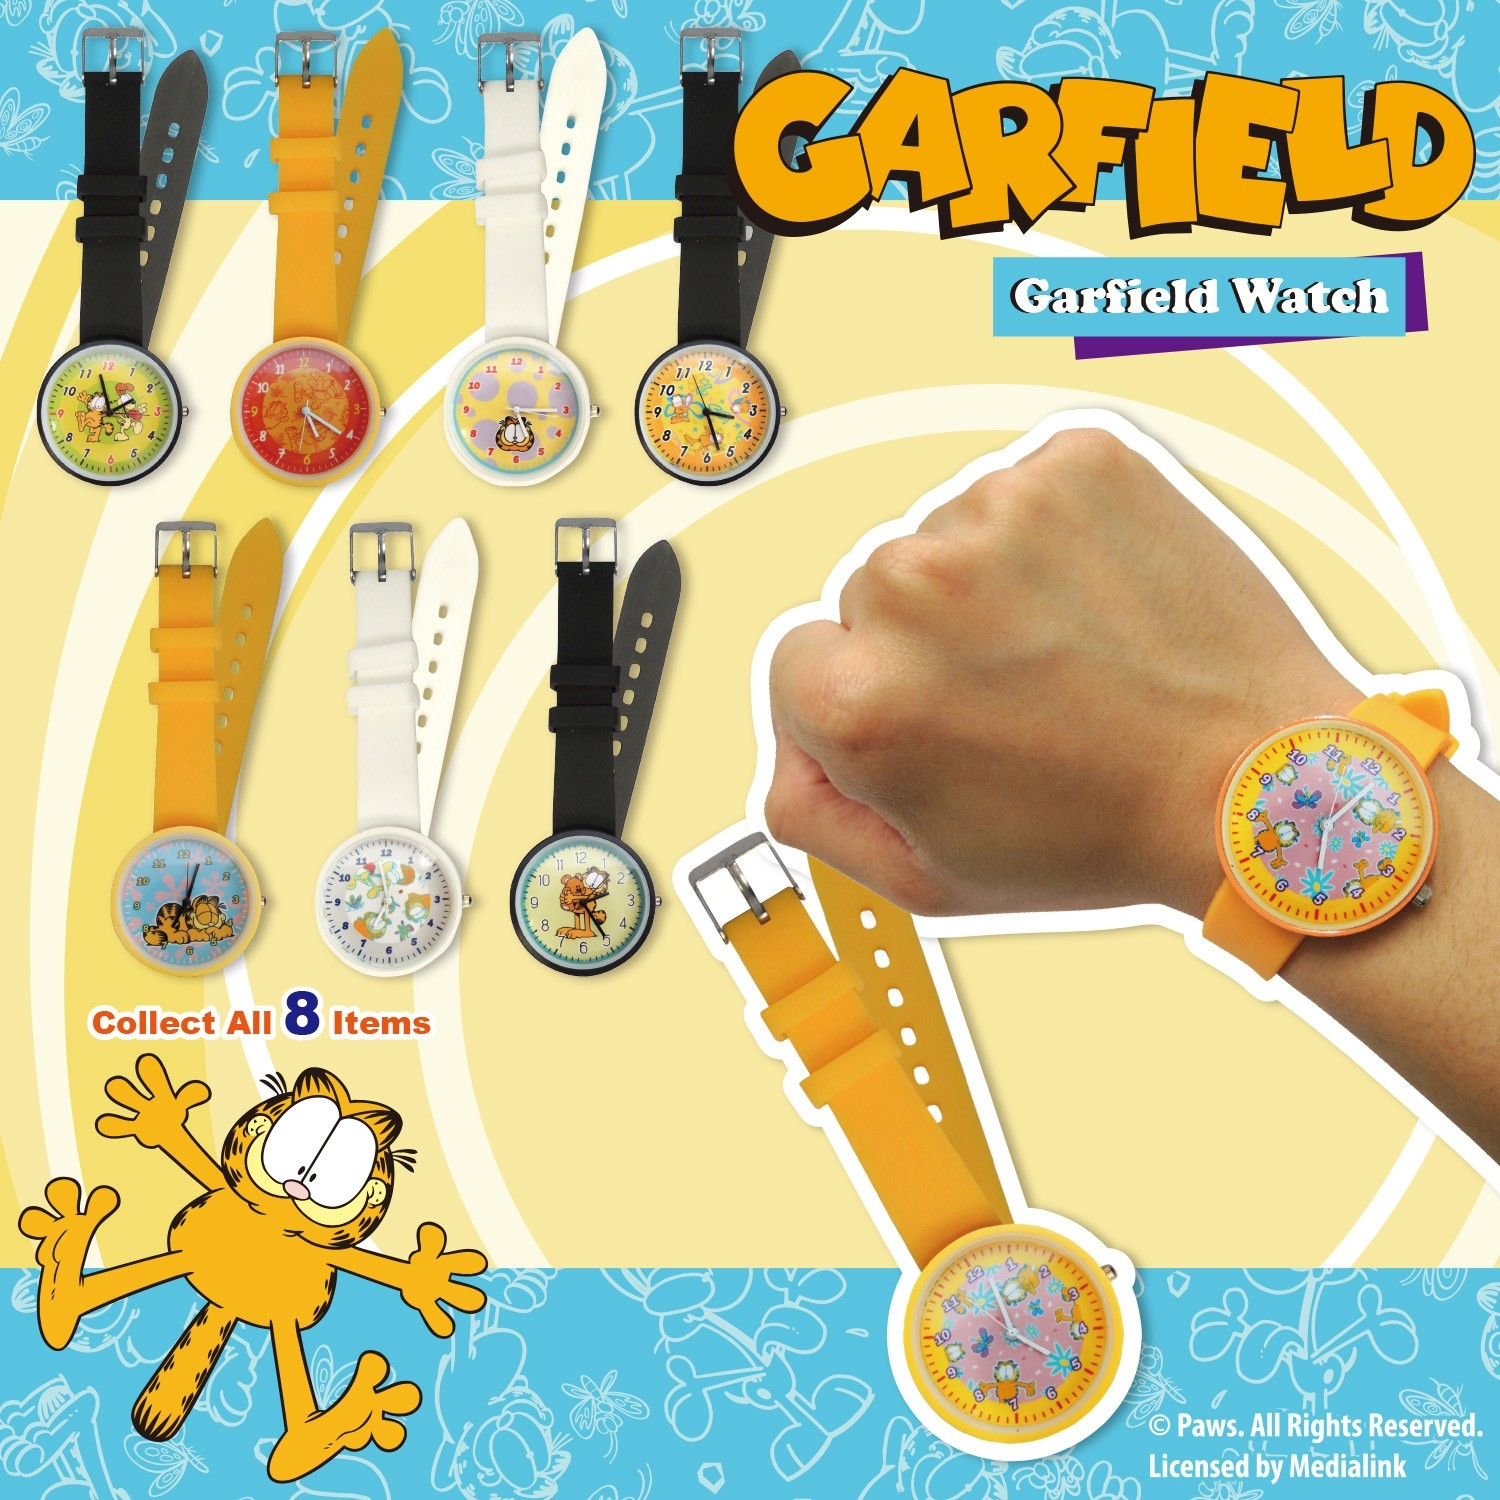 Garfield Watch